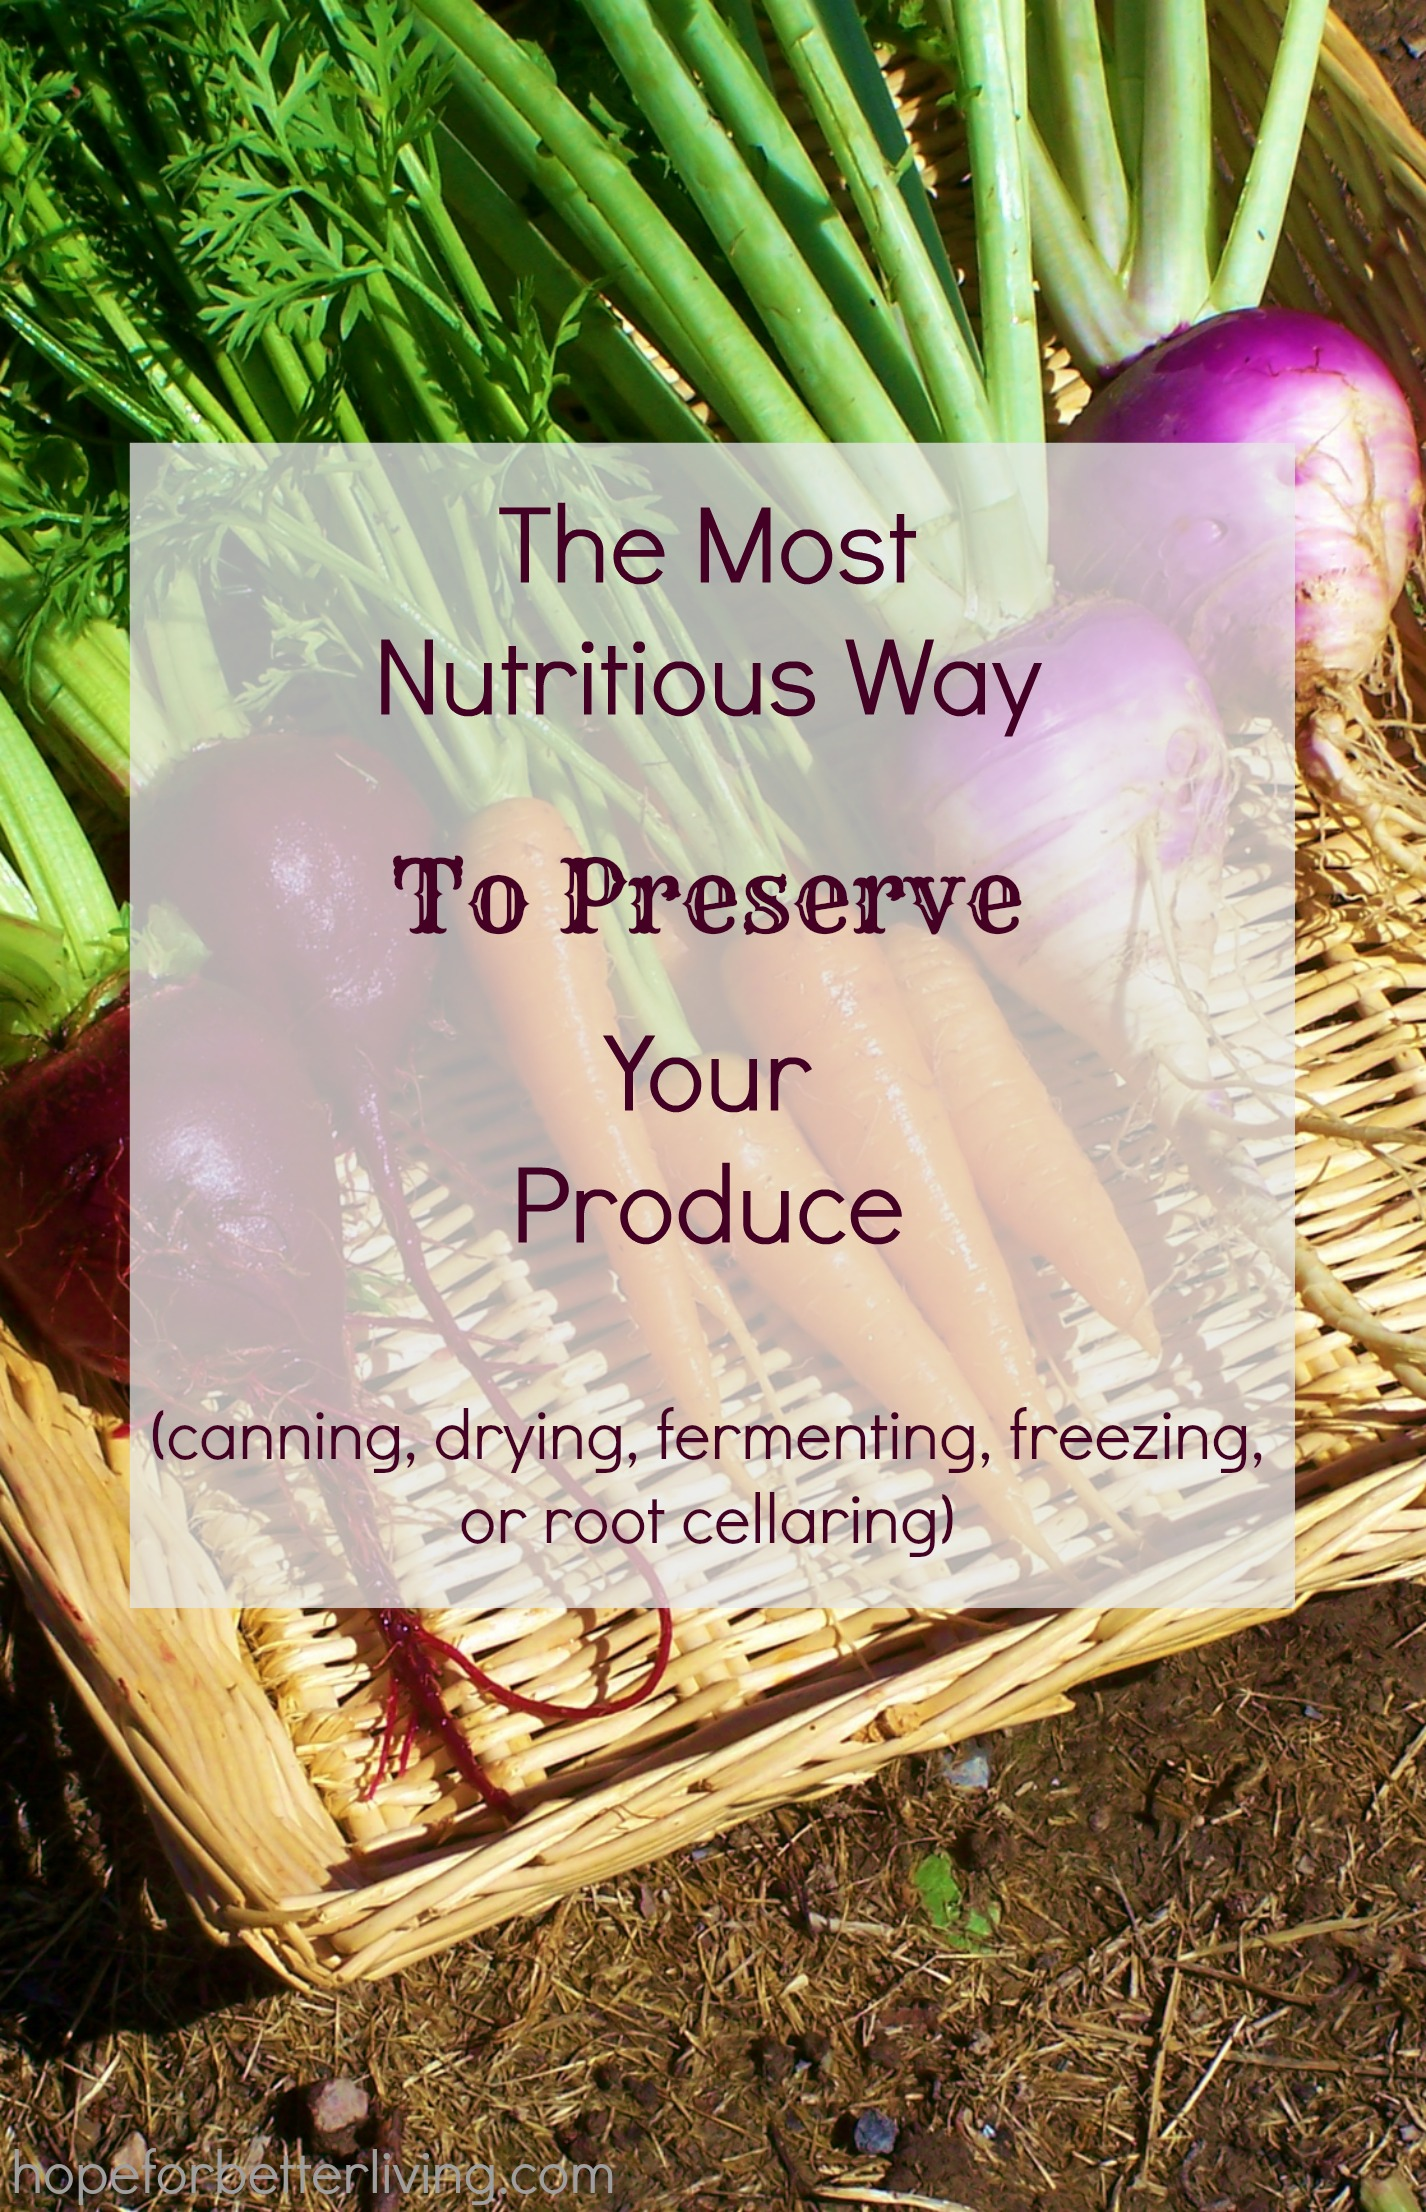 Learn how to preserve for nutrition!